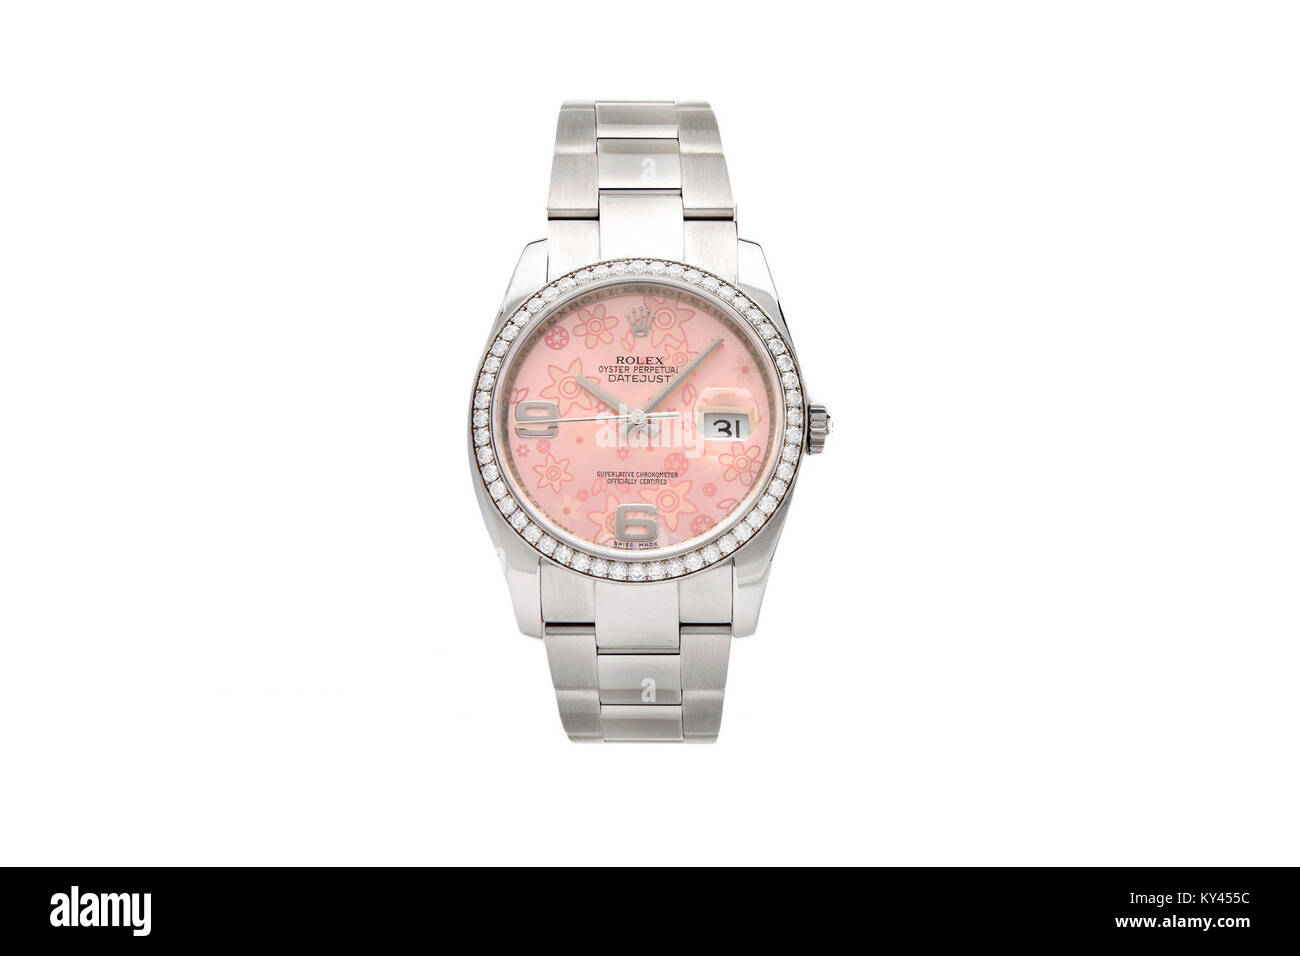 Rolex Oyster stailess steel ladies watch with pink face - Stock Image